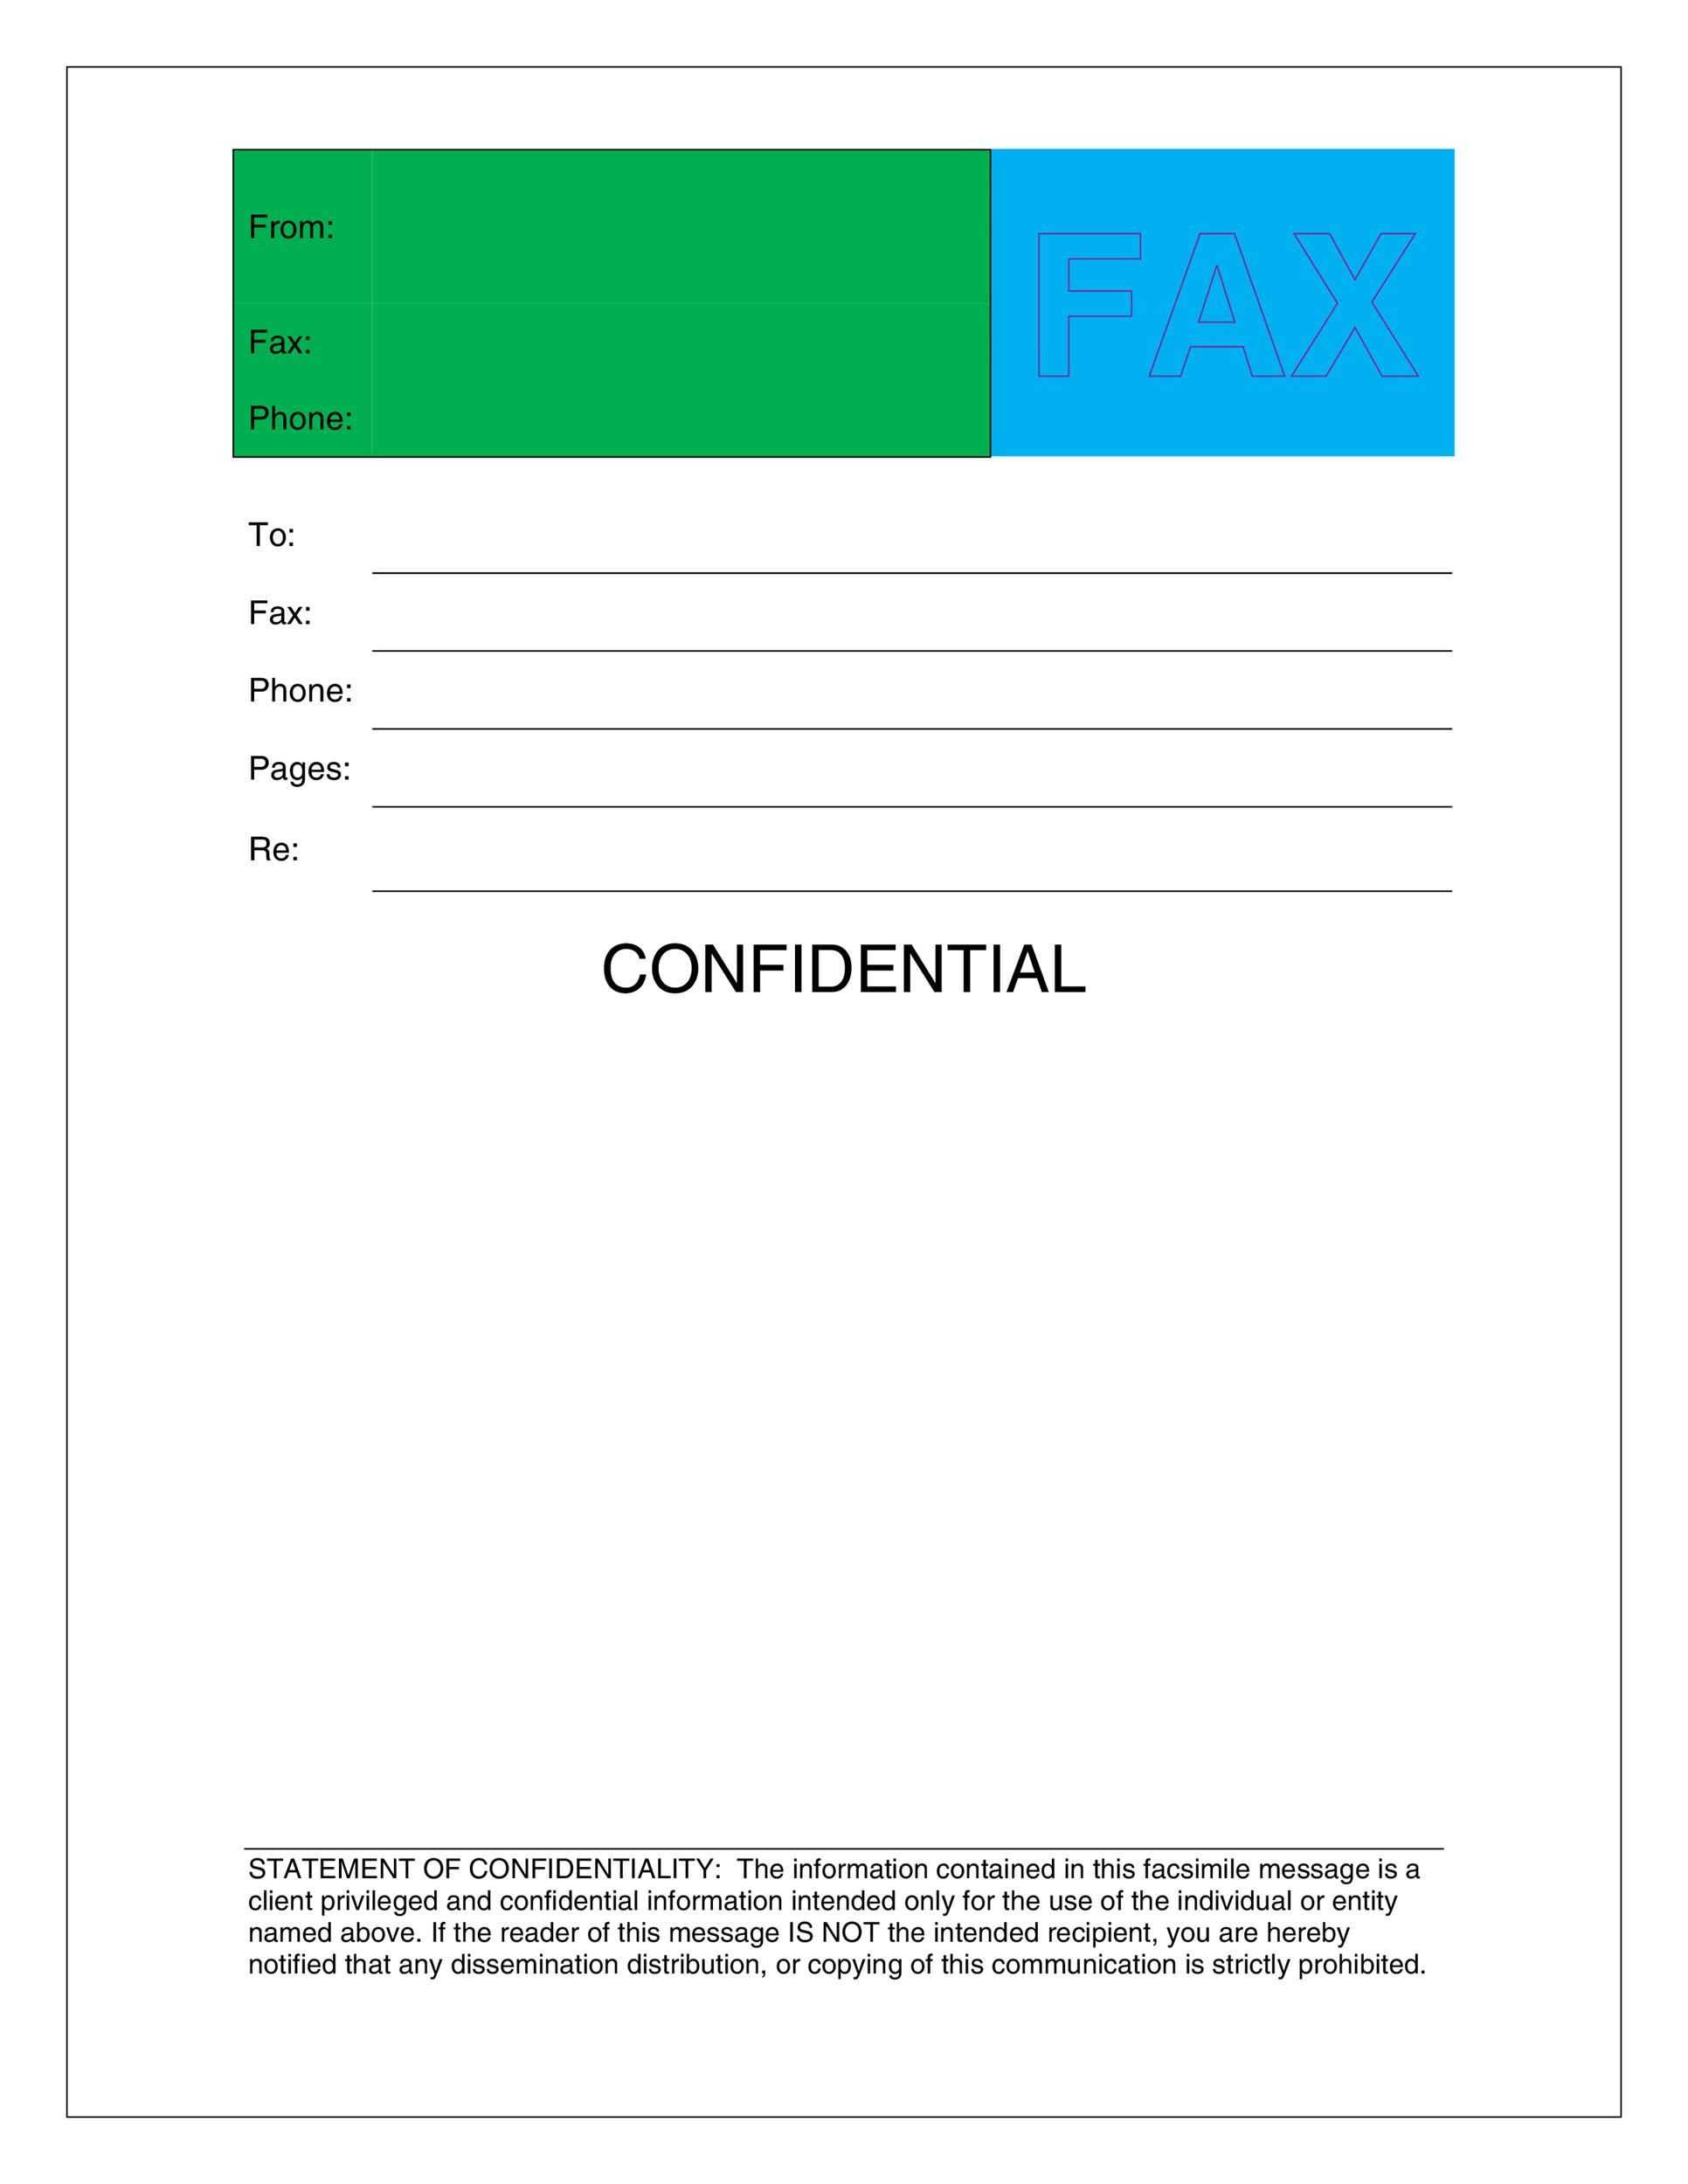 Free Fax Cover Sheet Template 02